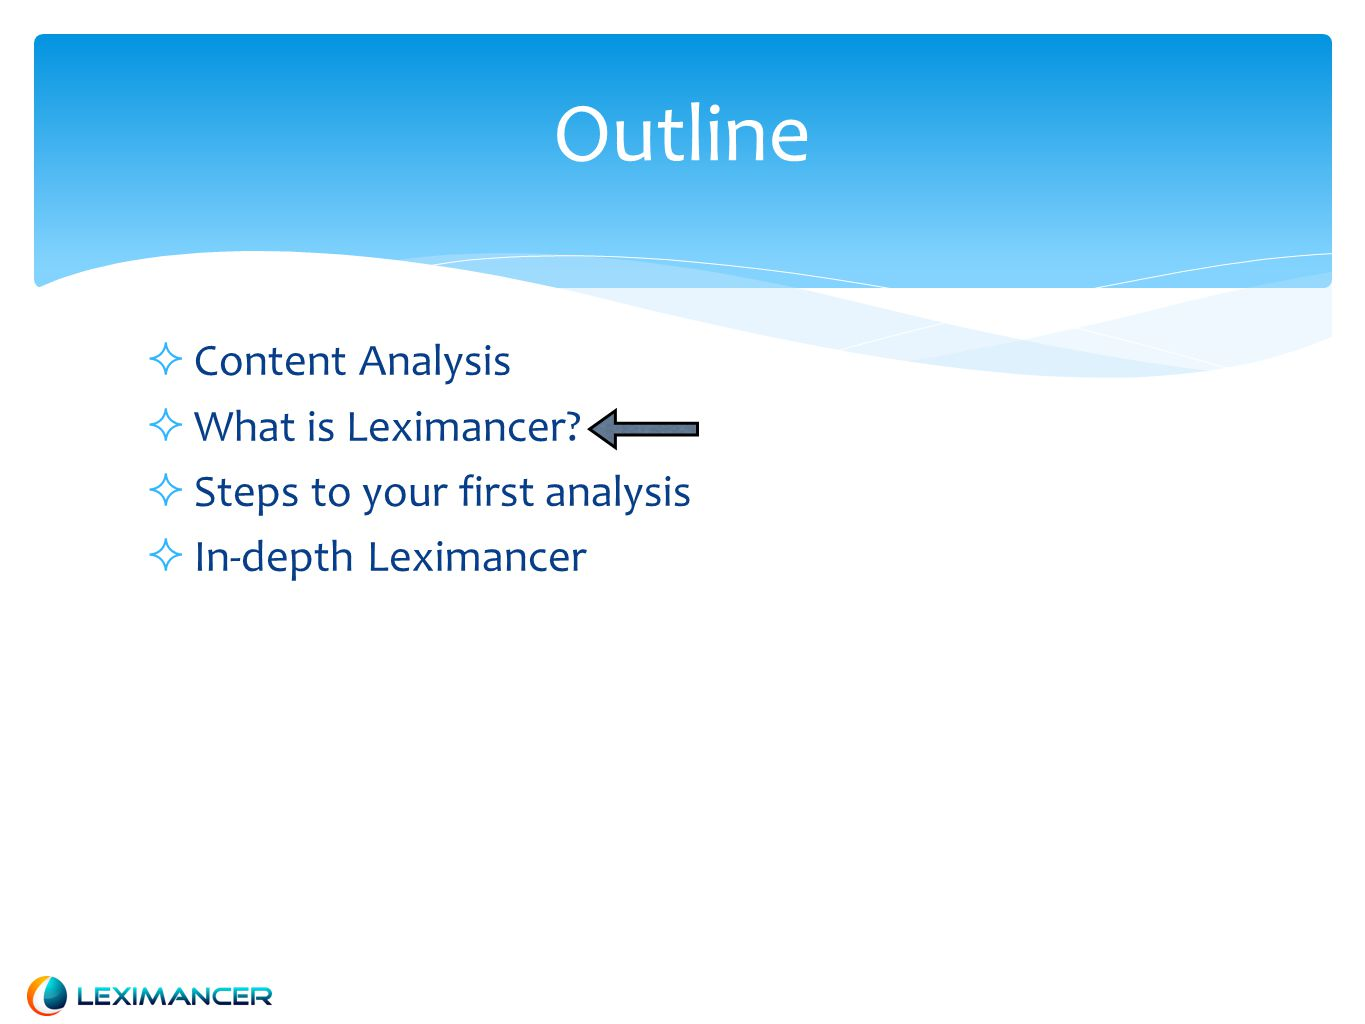  Content Analysis  What is Leximancer?  Steps to your first analysis  In-depth Leximancer Outline